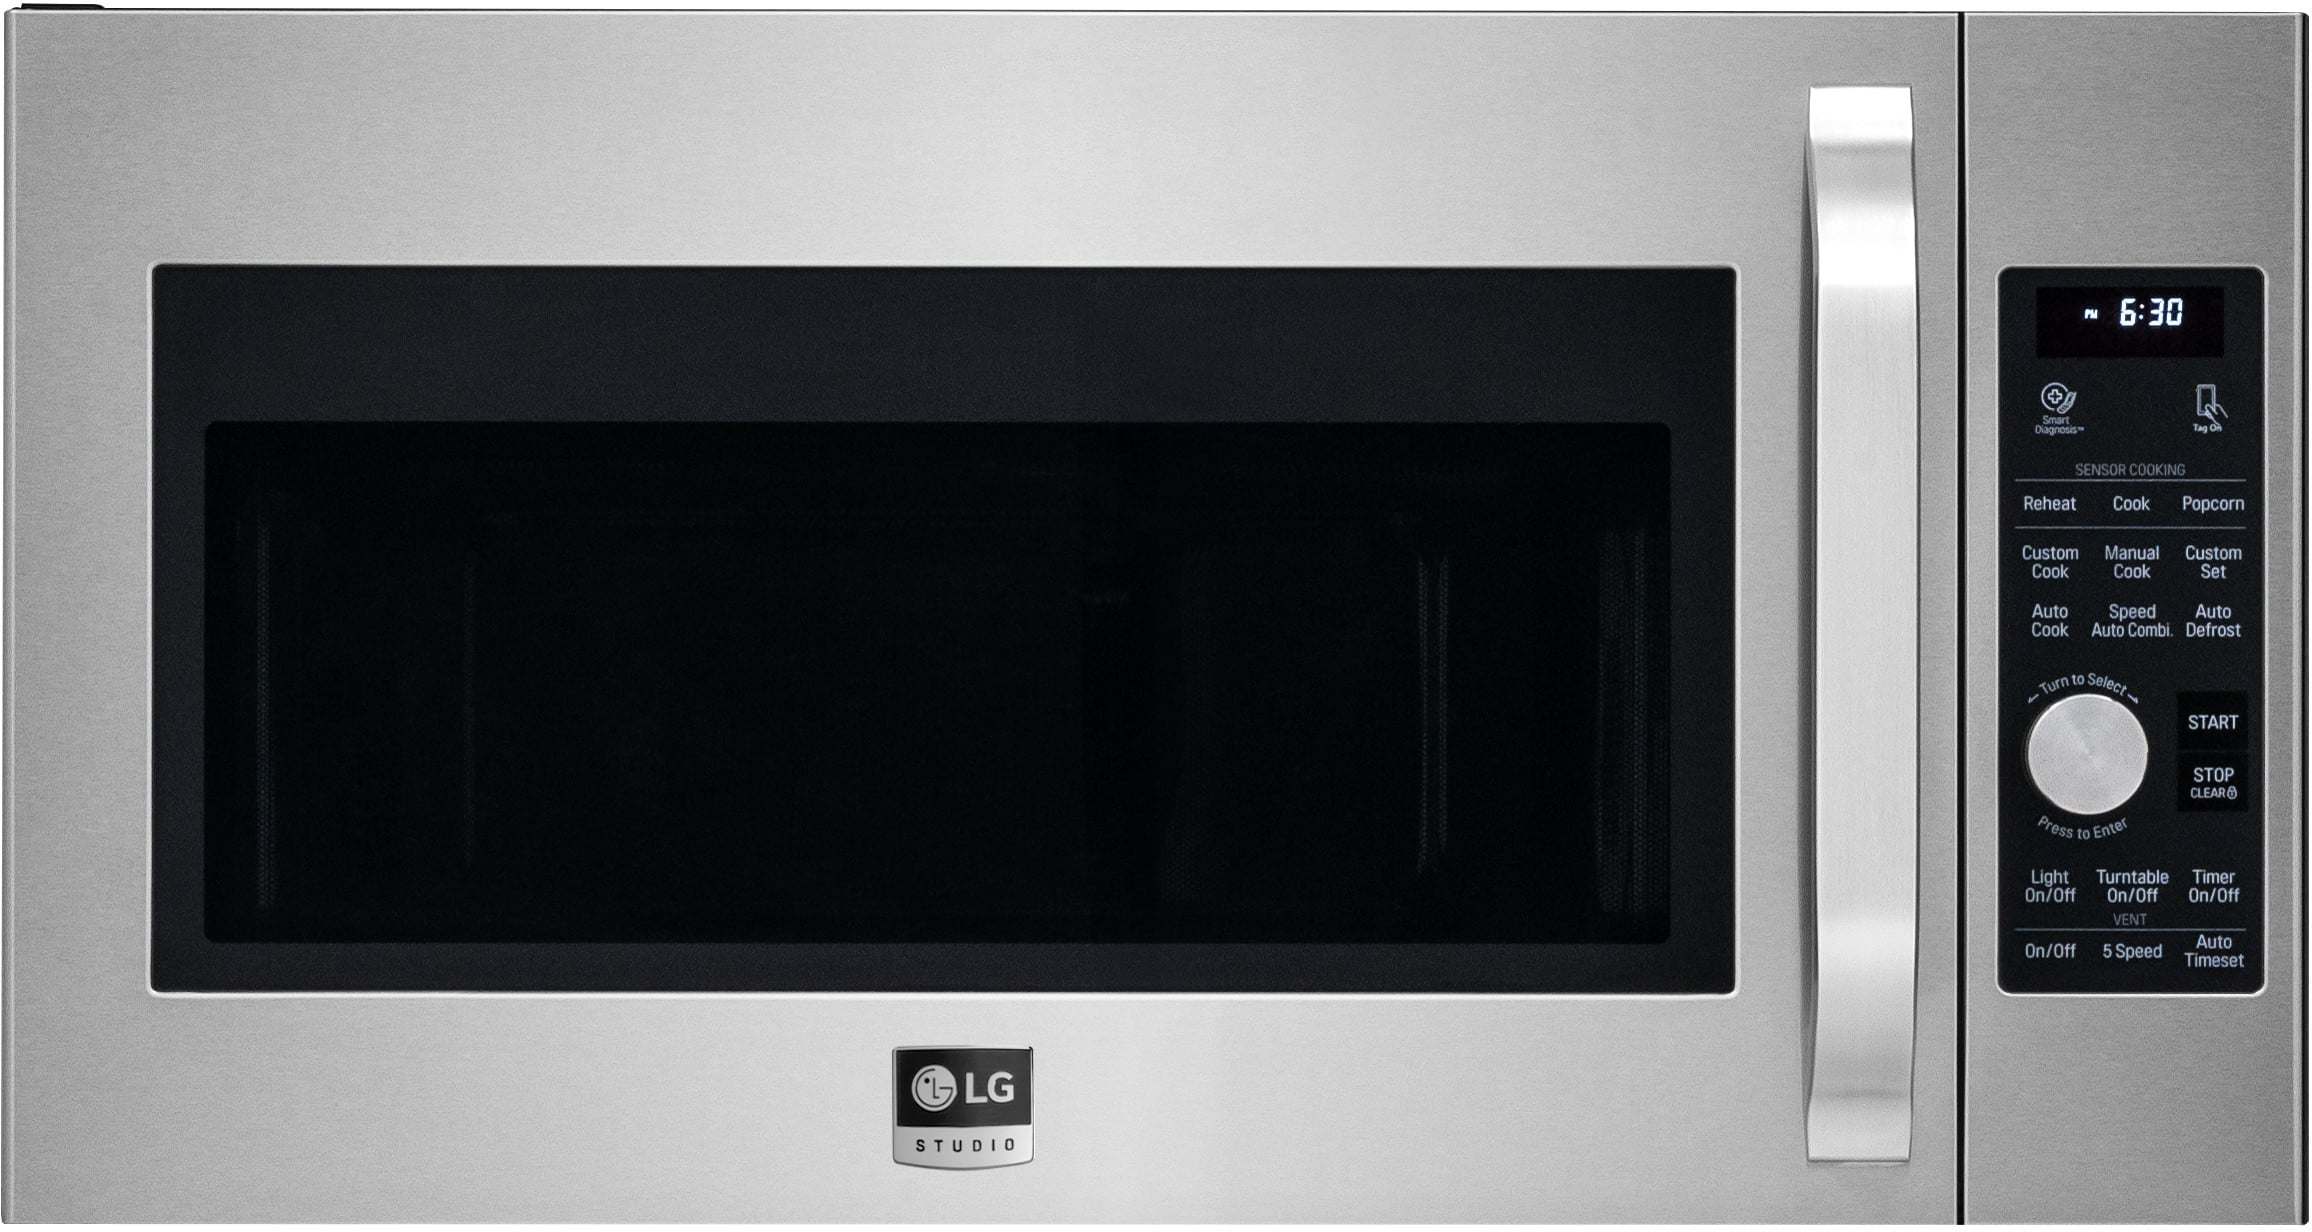 Lg Lssg3016st 30 Inch Slide In Gas Range With 6 3 Cu Ft